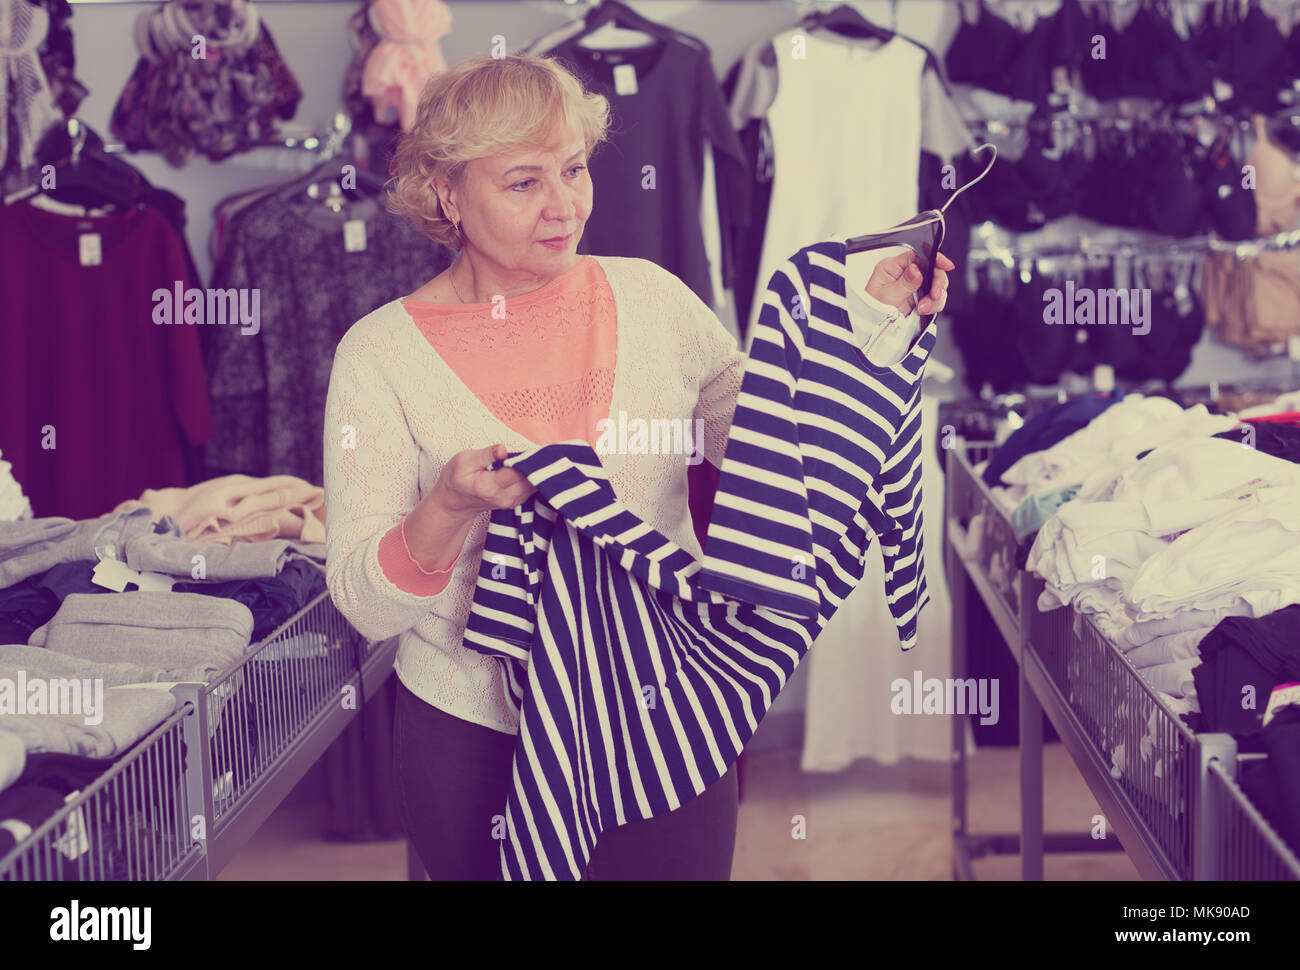 Adult woman purchaser choosing striped dress in the shopping center - Stock Image